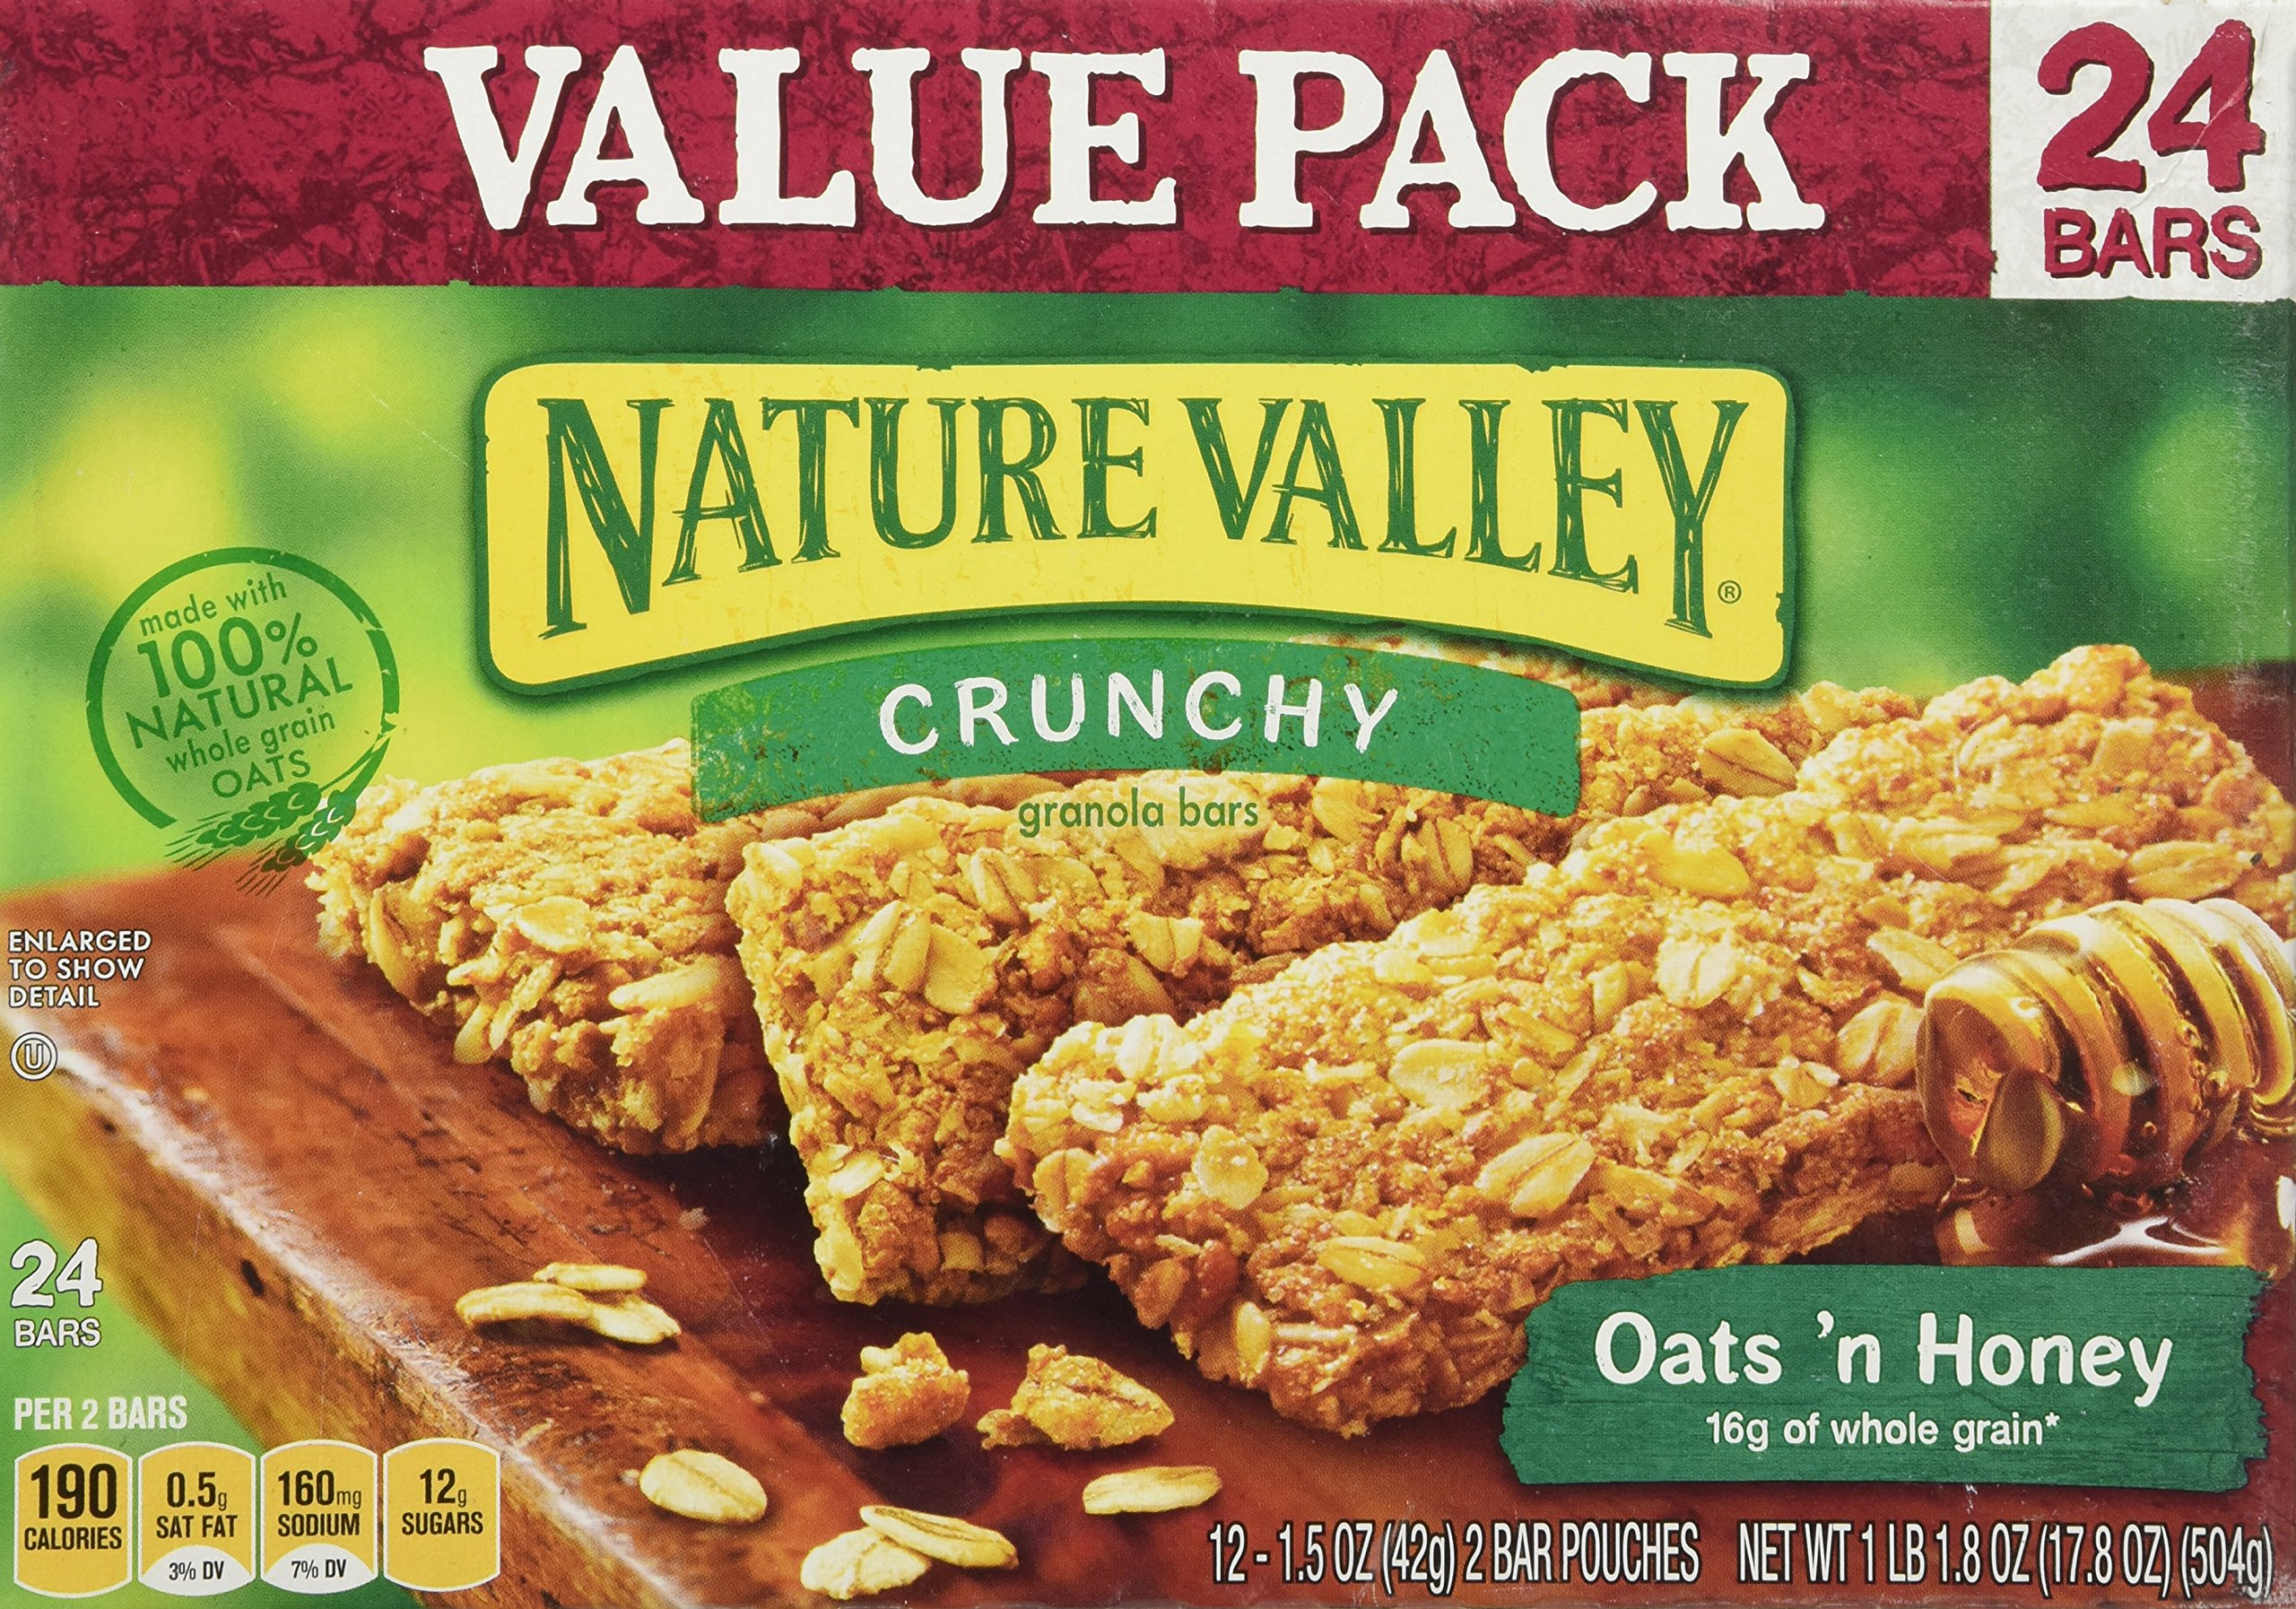 Nature Valley Crunchy Granola Bars Oats n Honey Value Pack - 24 ct